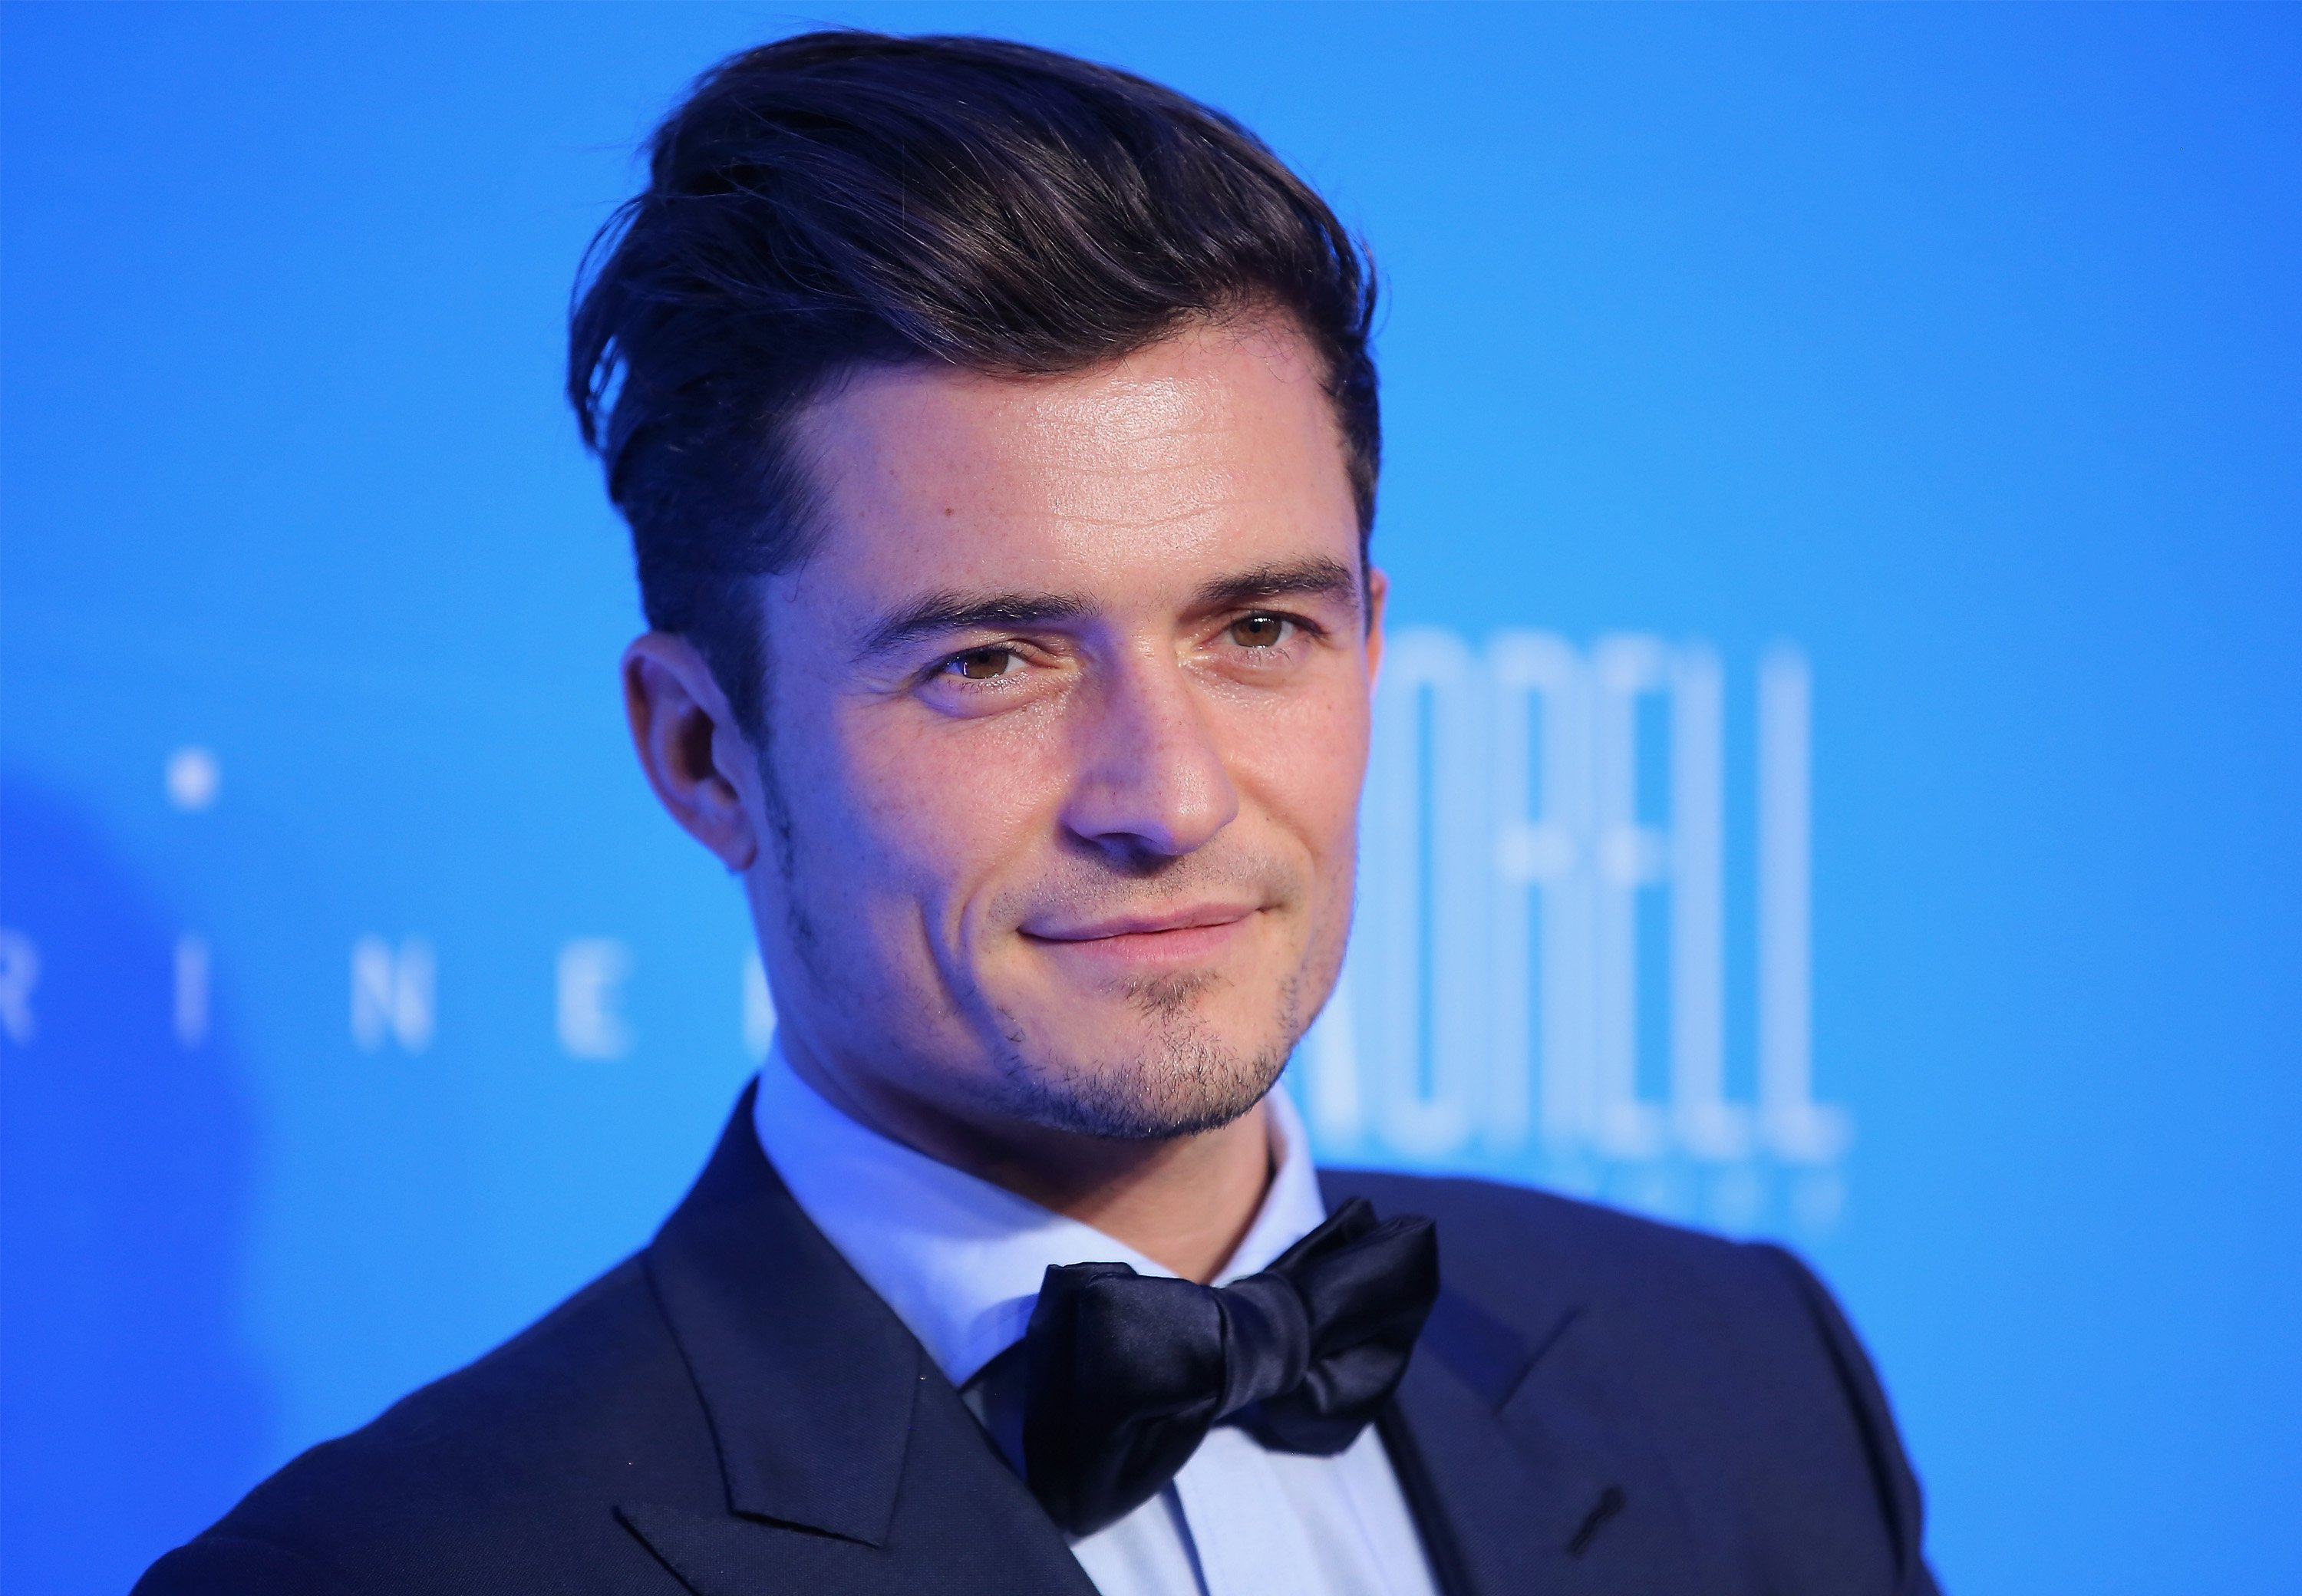 Orlando Bloom attends the 11th Annual UNICEF Snowflake Ball at Cipriani, Wall Street on December 1, 2015 in New York City | Photo: Getty Images